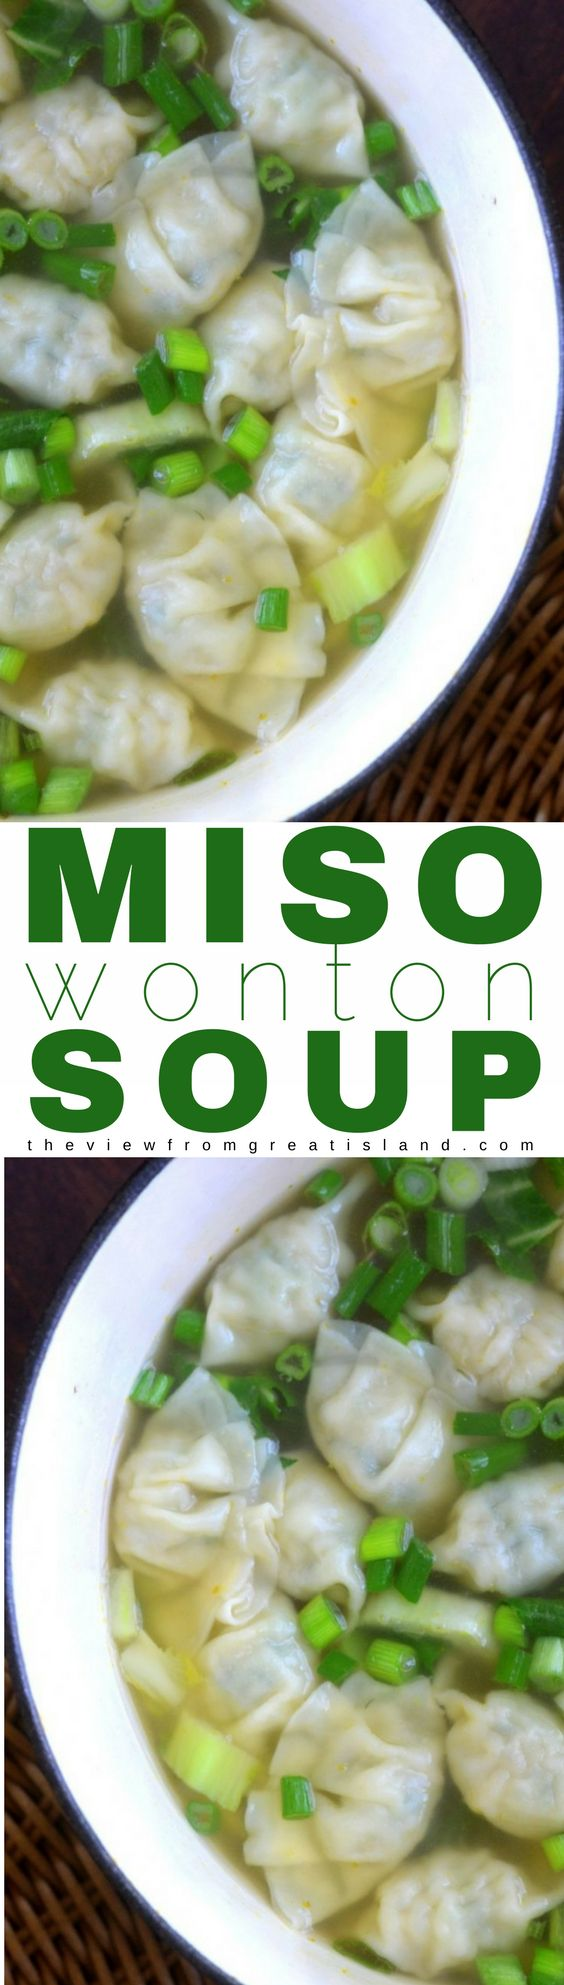 Miso Wonton Soup is healthy, hearty comfort food that can be on the table in less than 30 minutes. #miso #soup #30minutemeal #healthysoup #Japanese #soy #superfood #healthysoup #dumplings #gyoza #chicken #noodlesoup #chickensoup #comfortfood #dumplingsoup #misosoup